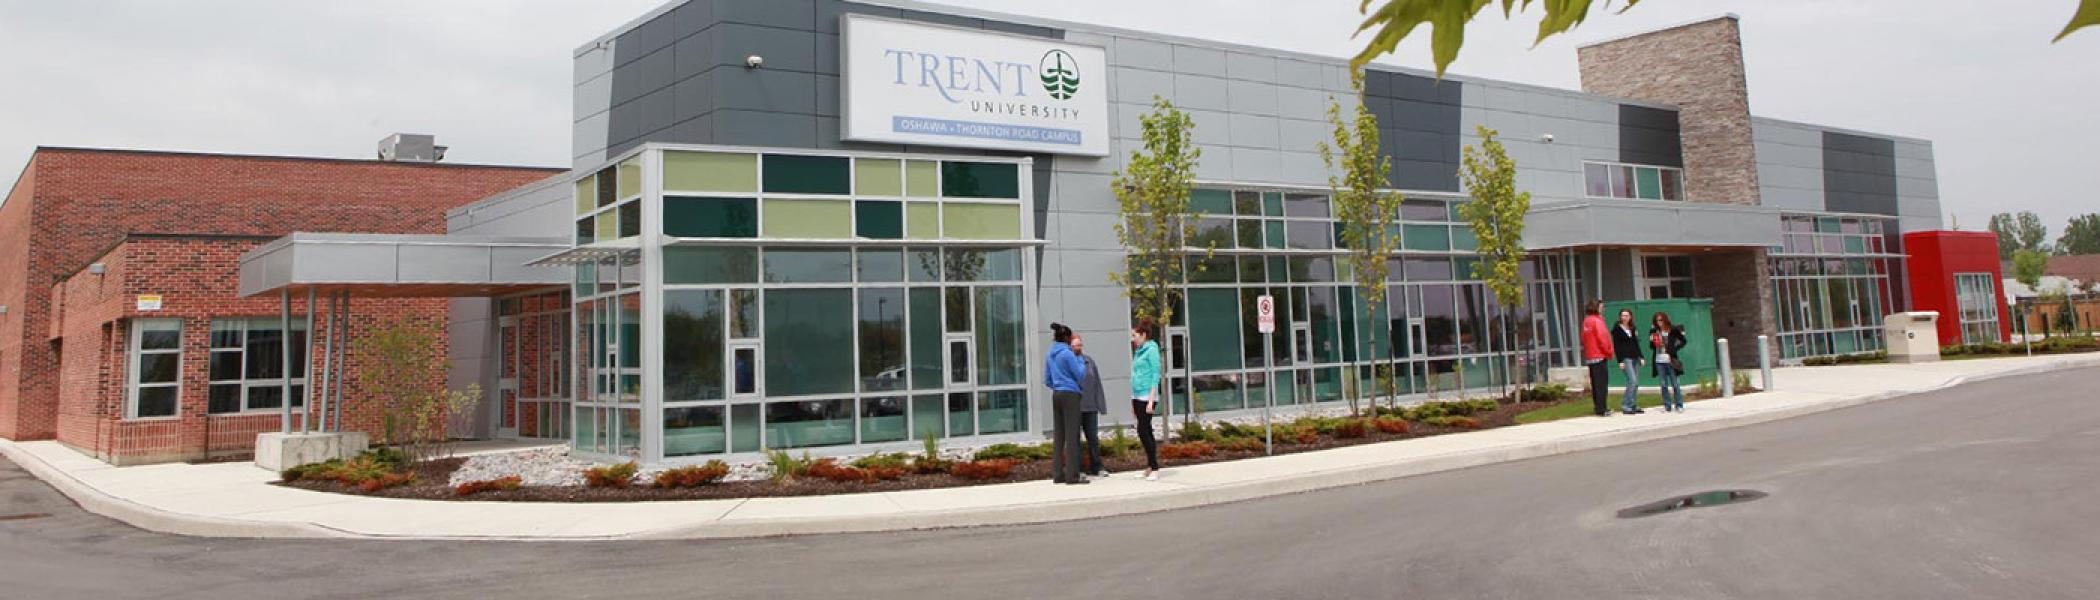 Two small groups of people are standing near the entrance of Trent University Durham Campus